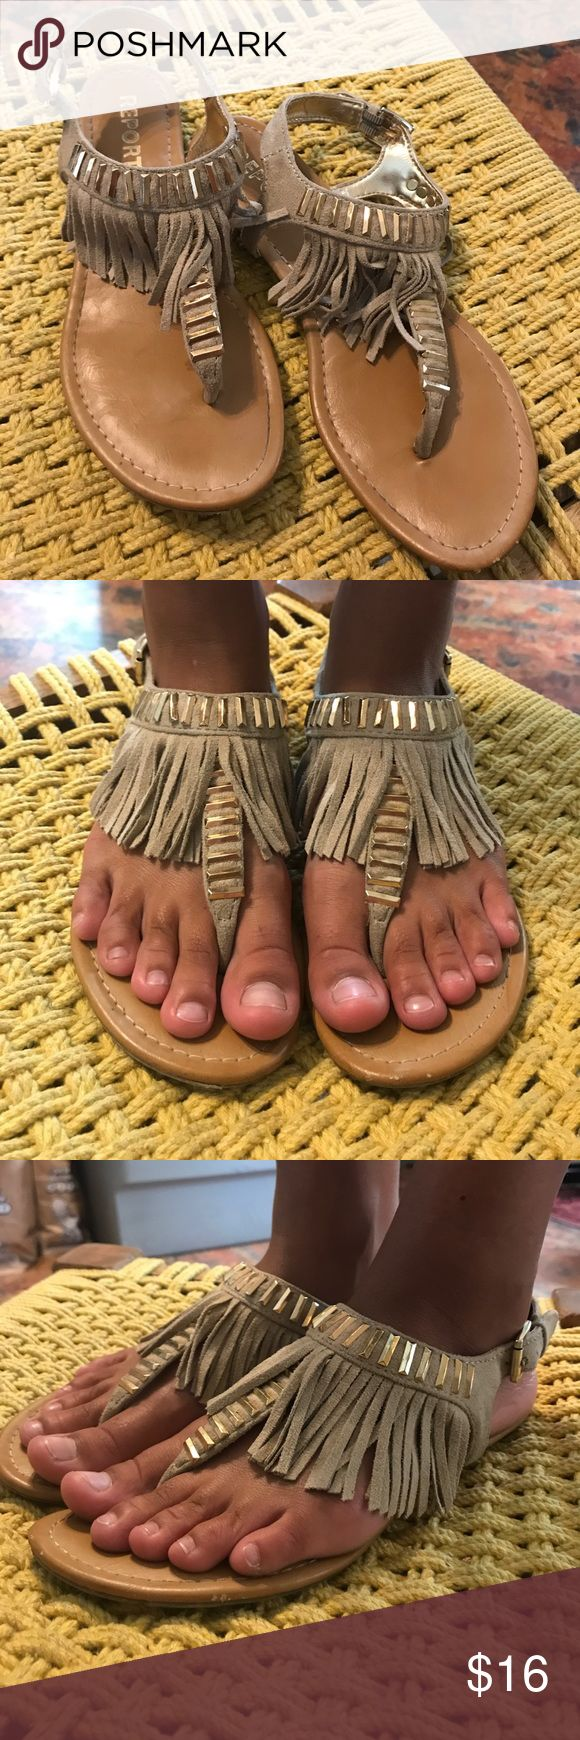 Report Tribal Fringe Sandals w/Gold Accents Size 7 Report Tribal Fringe Sandals w/ Gold Accents Size 7     In great used condition. Report Shoes Sandals